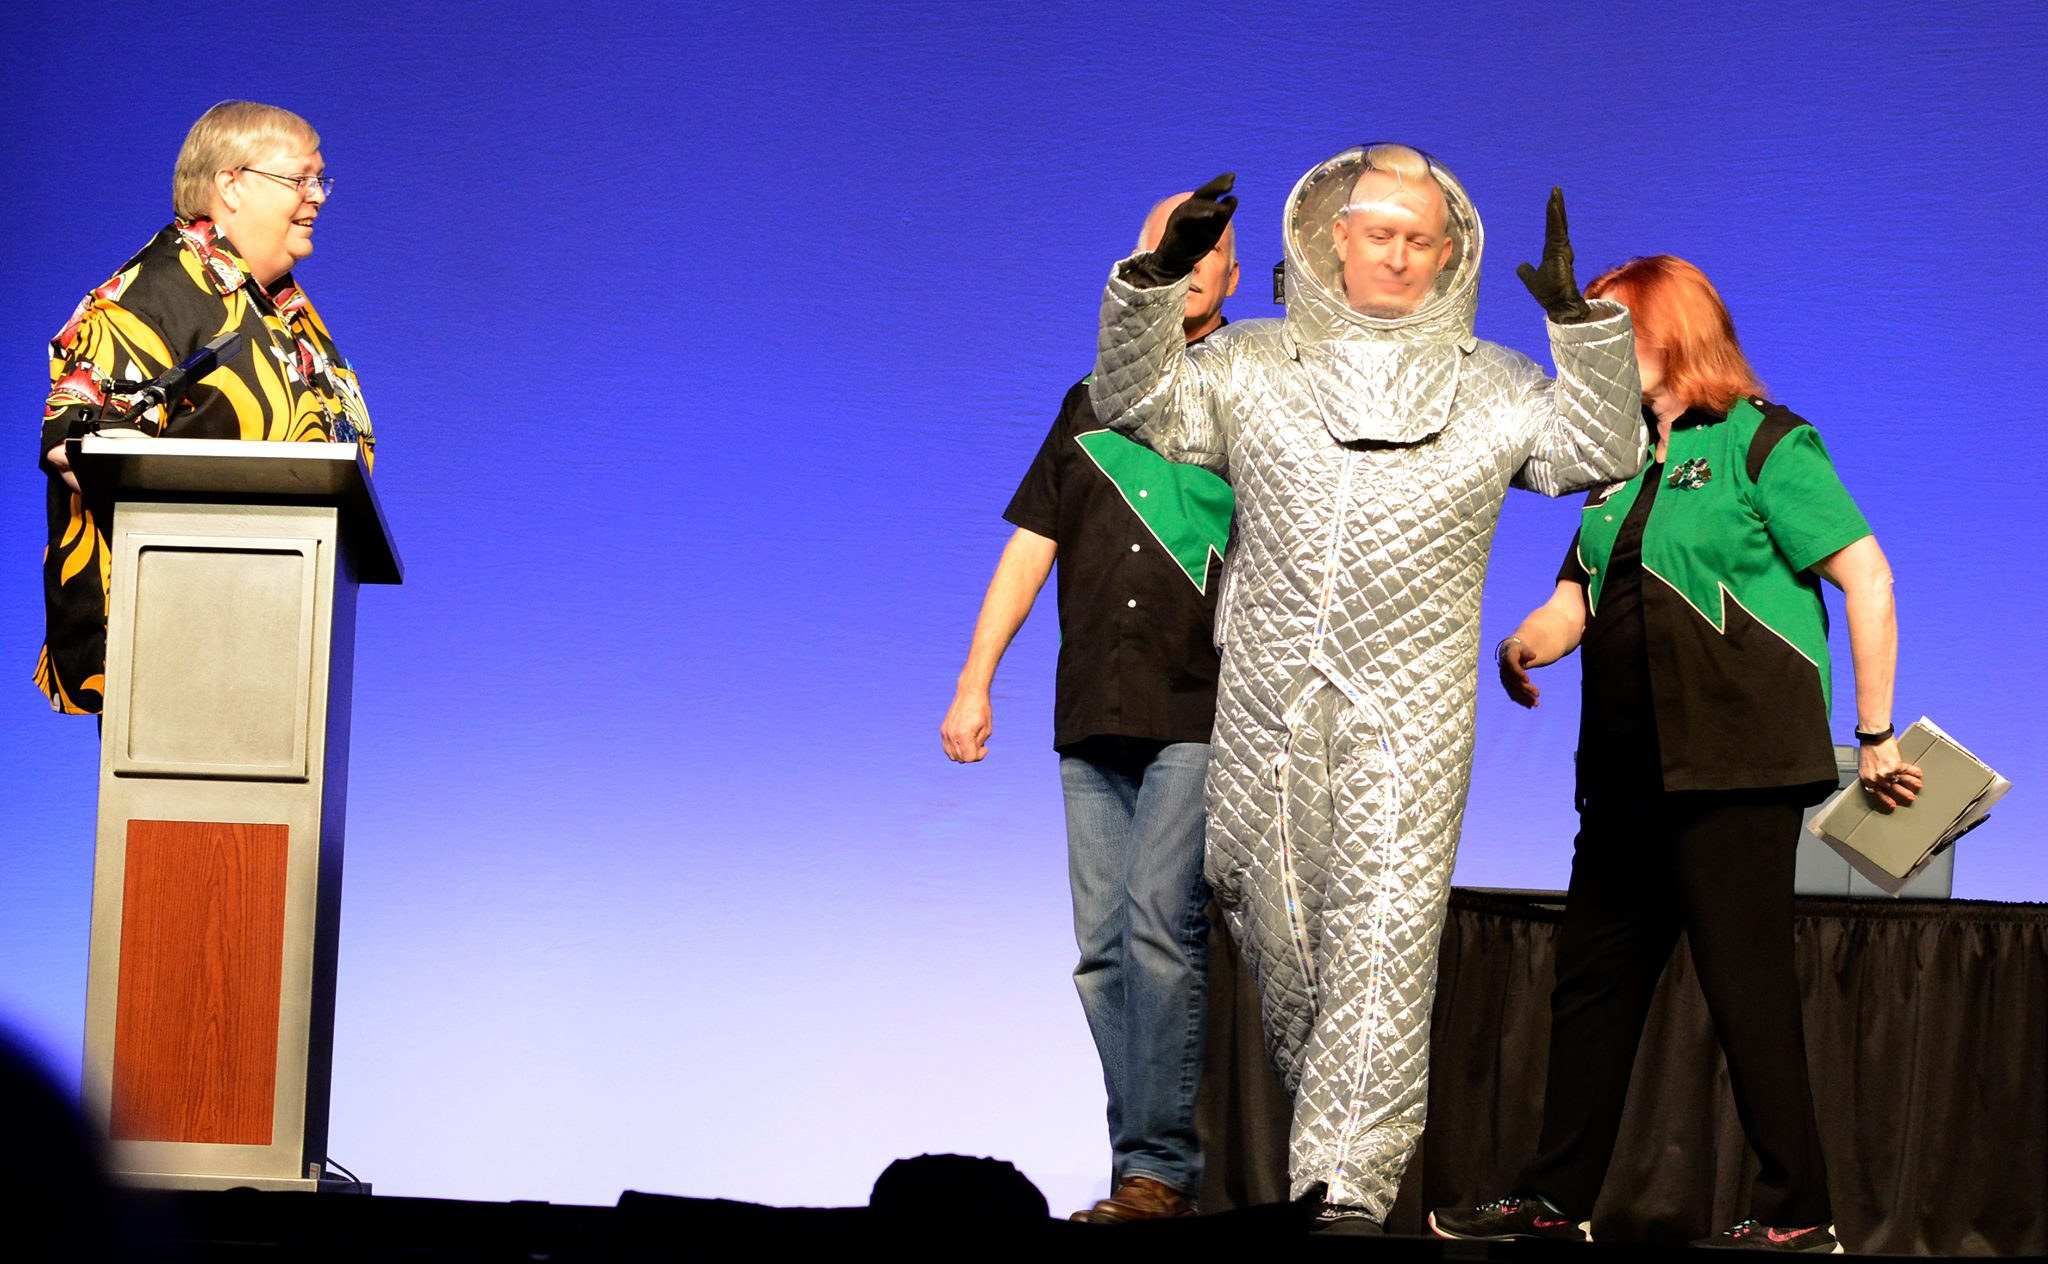 Kevin Roche in  spacesuit at the Worldcon 76 Opening Ceremonies